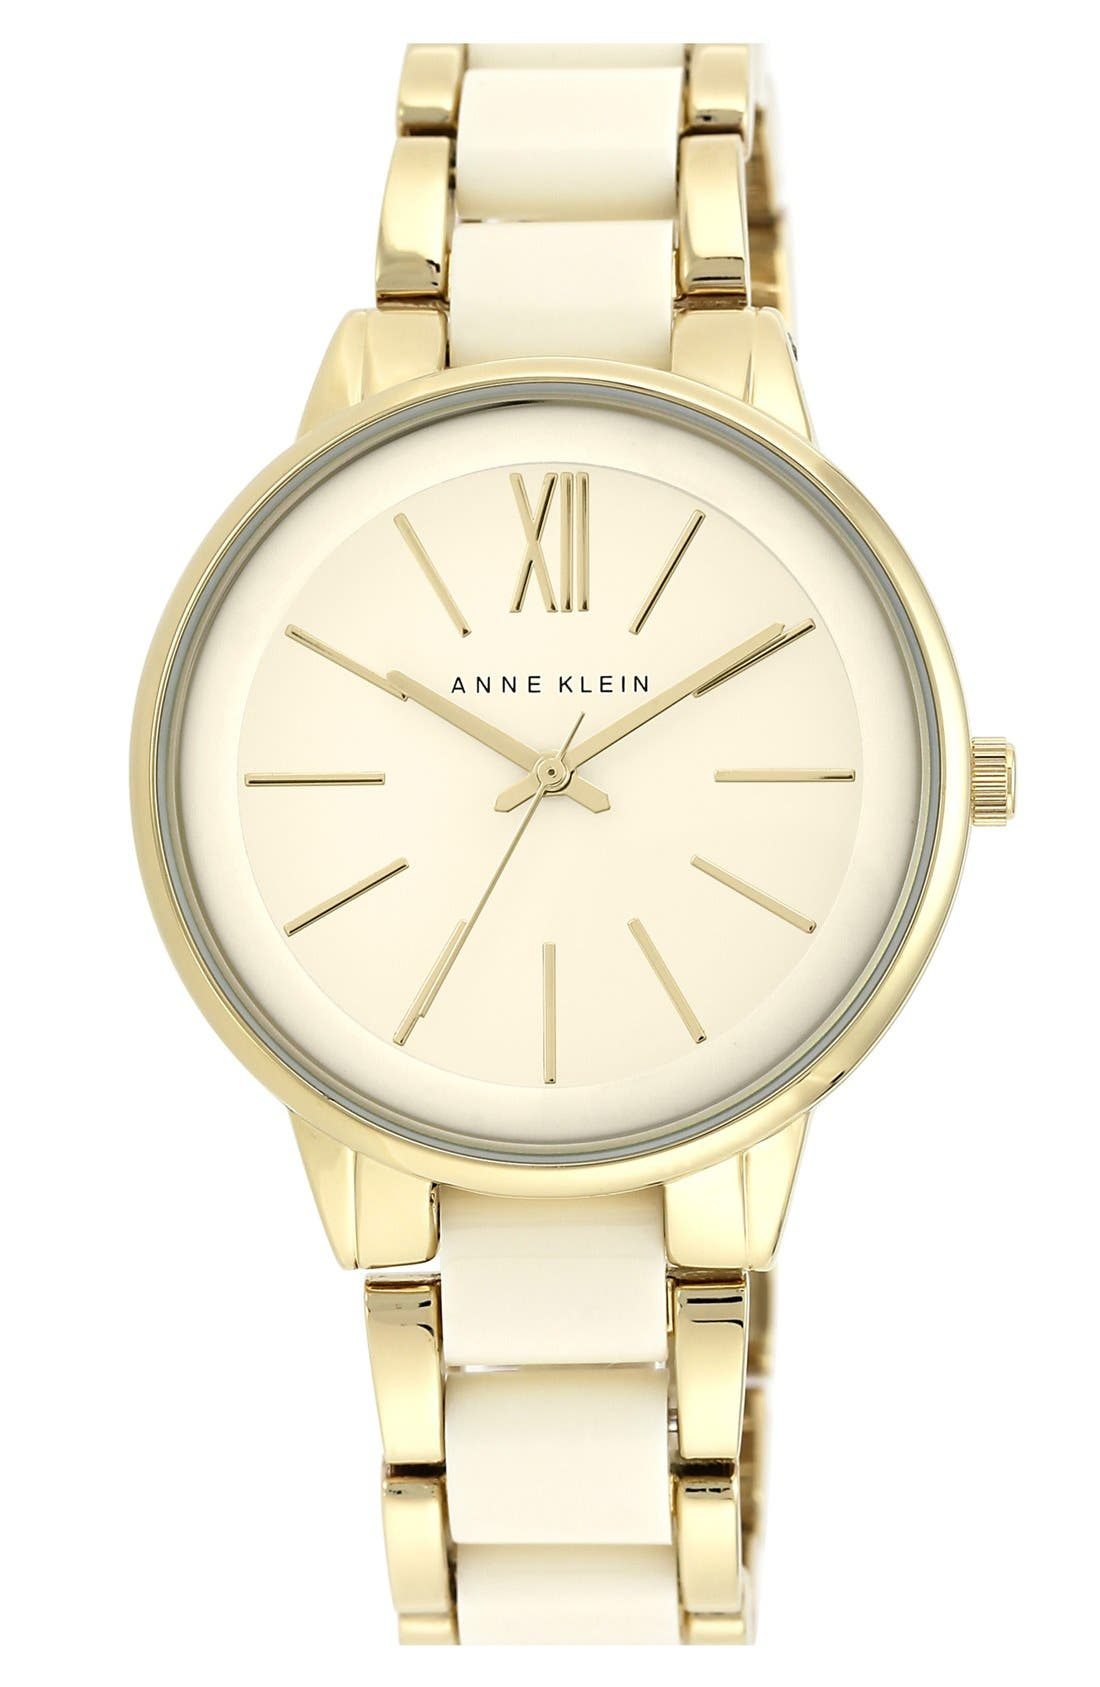 ANNE KLEIN Round Bracelet Watch, 43Mm in Ivory/ Gold